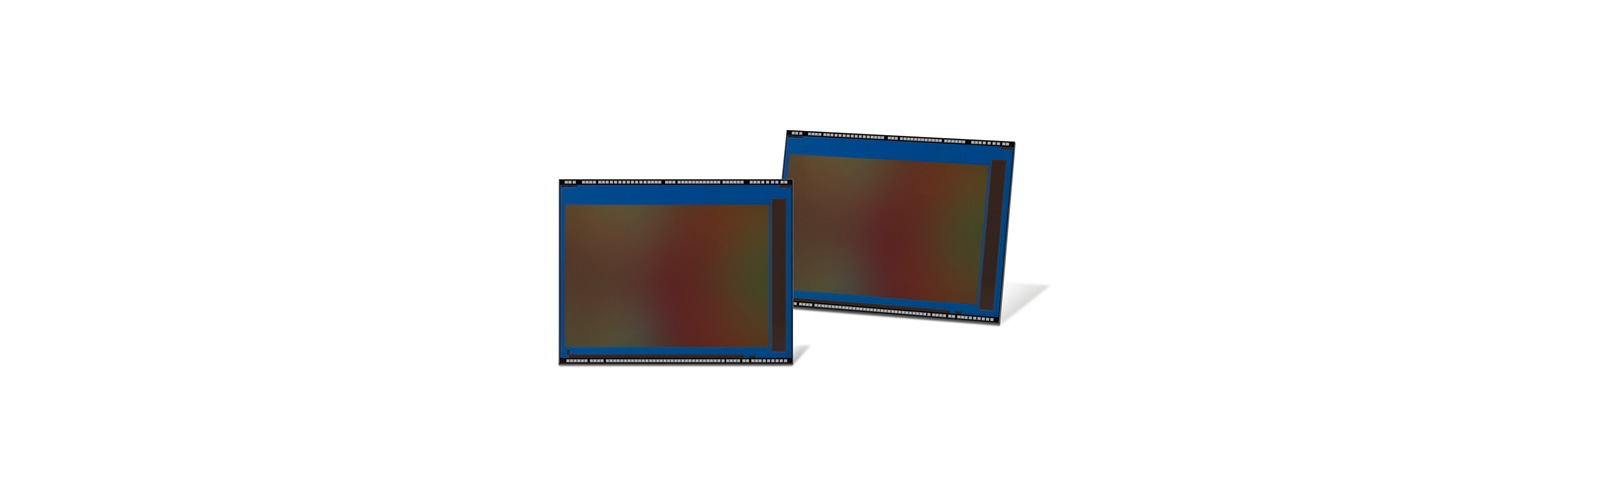 Samsung unveils the ISOCELL Slim GH1 image sensor with a 0.7㎛ pixel